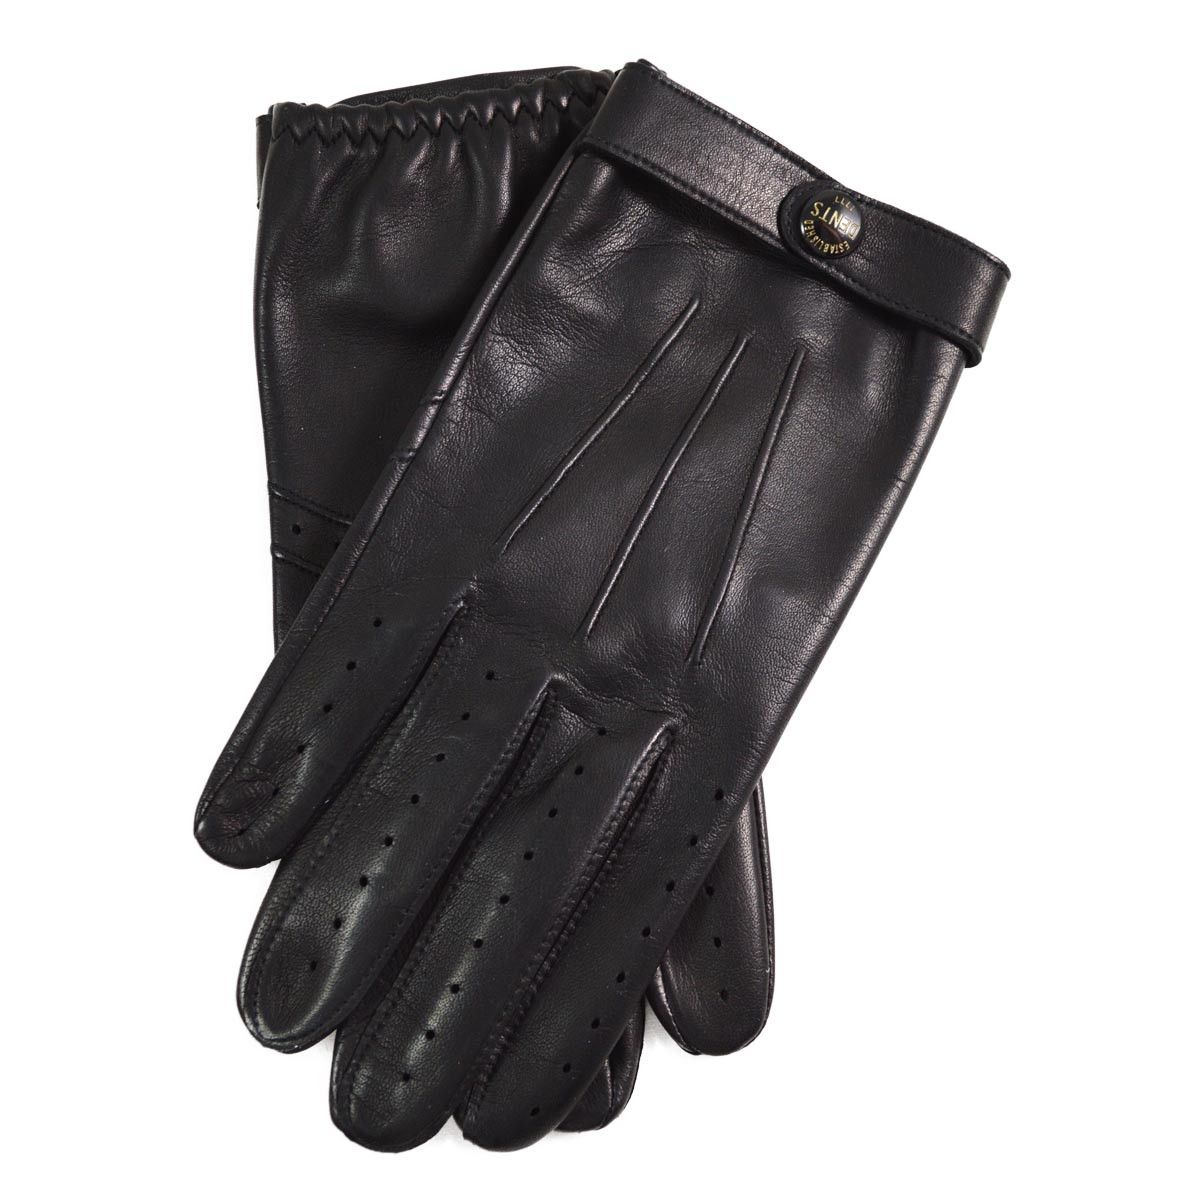 Leather driving gloves dents - Dents Fleming Bond 007 Spectre Leather Driving Gloves